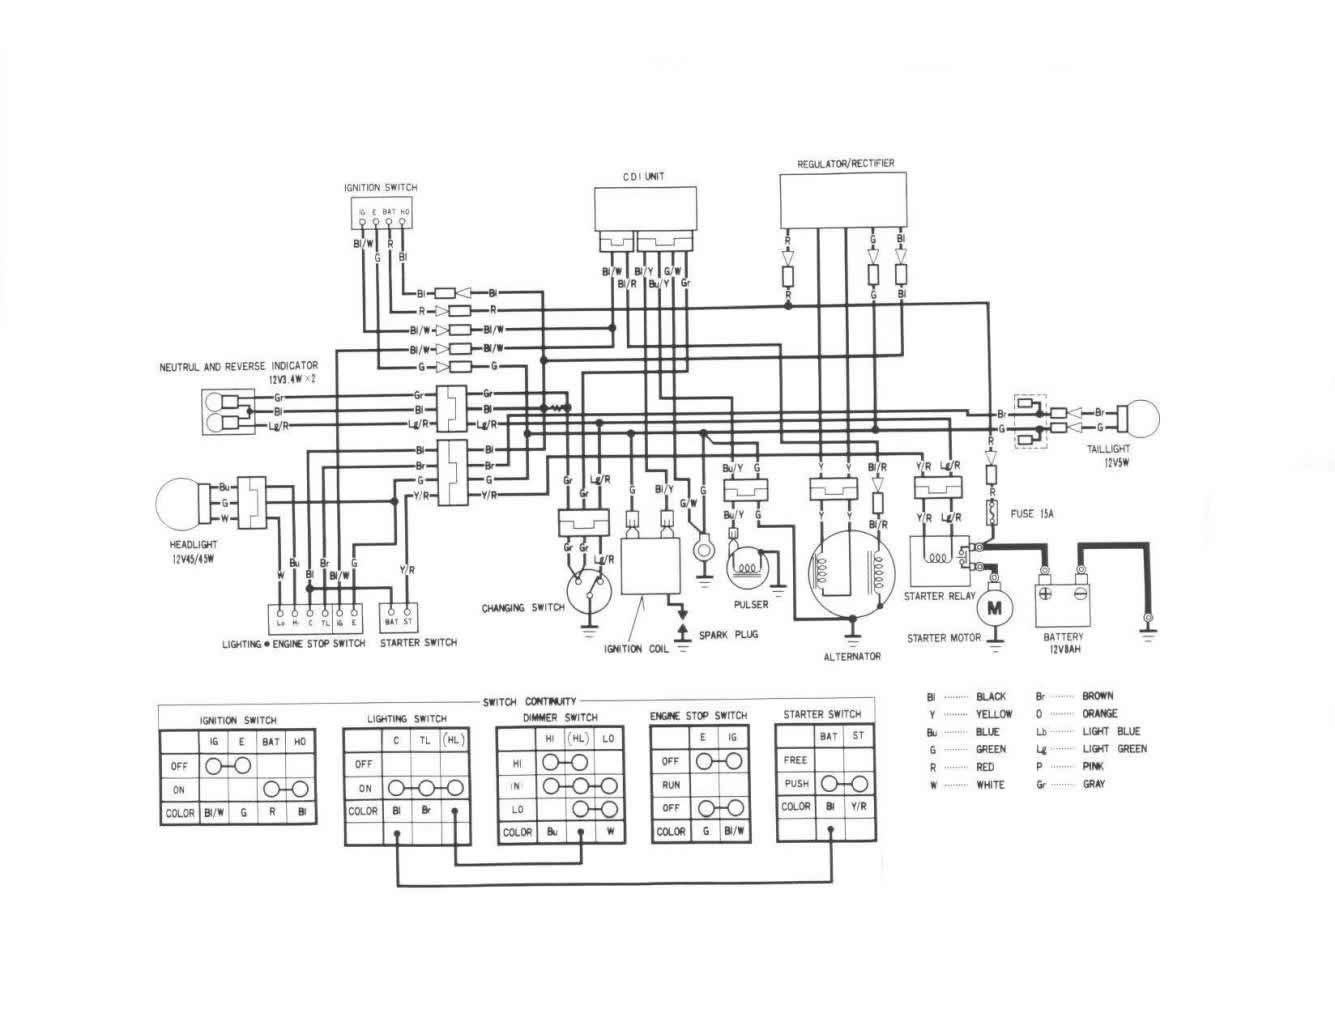 wiring diagram honda atc200es big red html